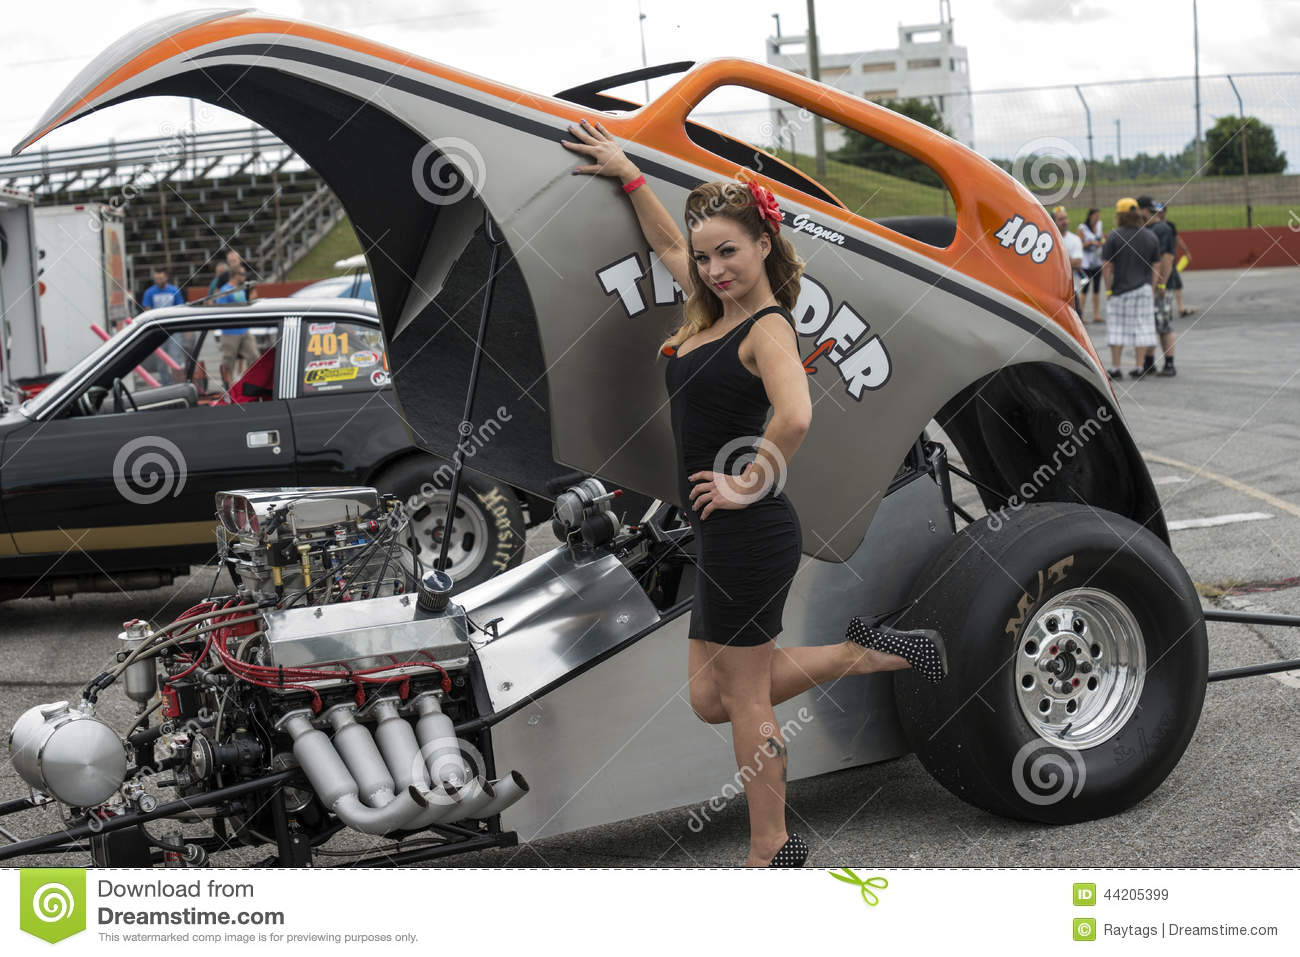 ... young woman pinup with a drag car at nostalgia drag racing event